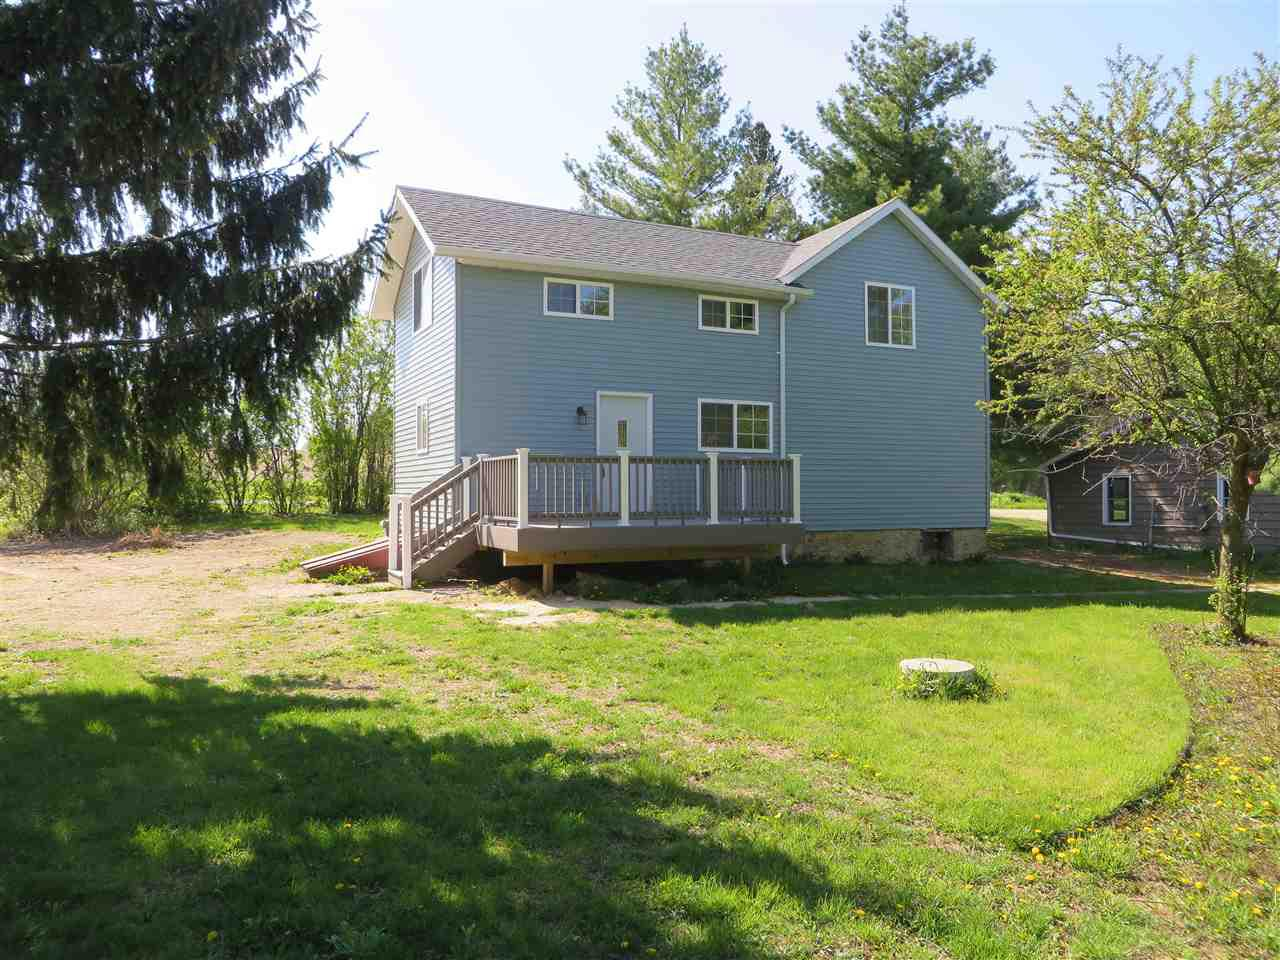 Come live in the country at the edge of Hanover! This completely renovated farm house was taken down to the studs. In the last year and a half it has a new roof, siding, windows, doors, plumbing, electrical, insulation, dry wall, cabinets, fixtures, furnace, A/C and appliances. Ready to move right in! Includes almost 8 acres with a  trail for horses or to walk. Three nice bedrooms with good sized closets and a bathroom on both floors. Laundry is on the main and kitchen has a large 5x6 pantry closet. Spacious 35x60 Wick building with 2 garage bays and extra storage space. Also a separate end with heated and insulated workshop and a covered 12' attached patio.  Adjacent to snowmobile trails.